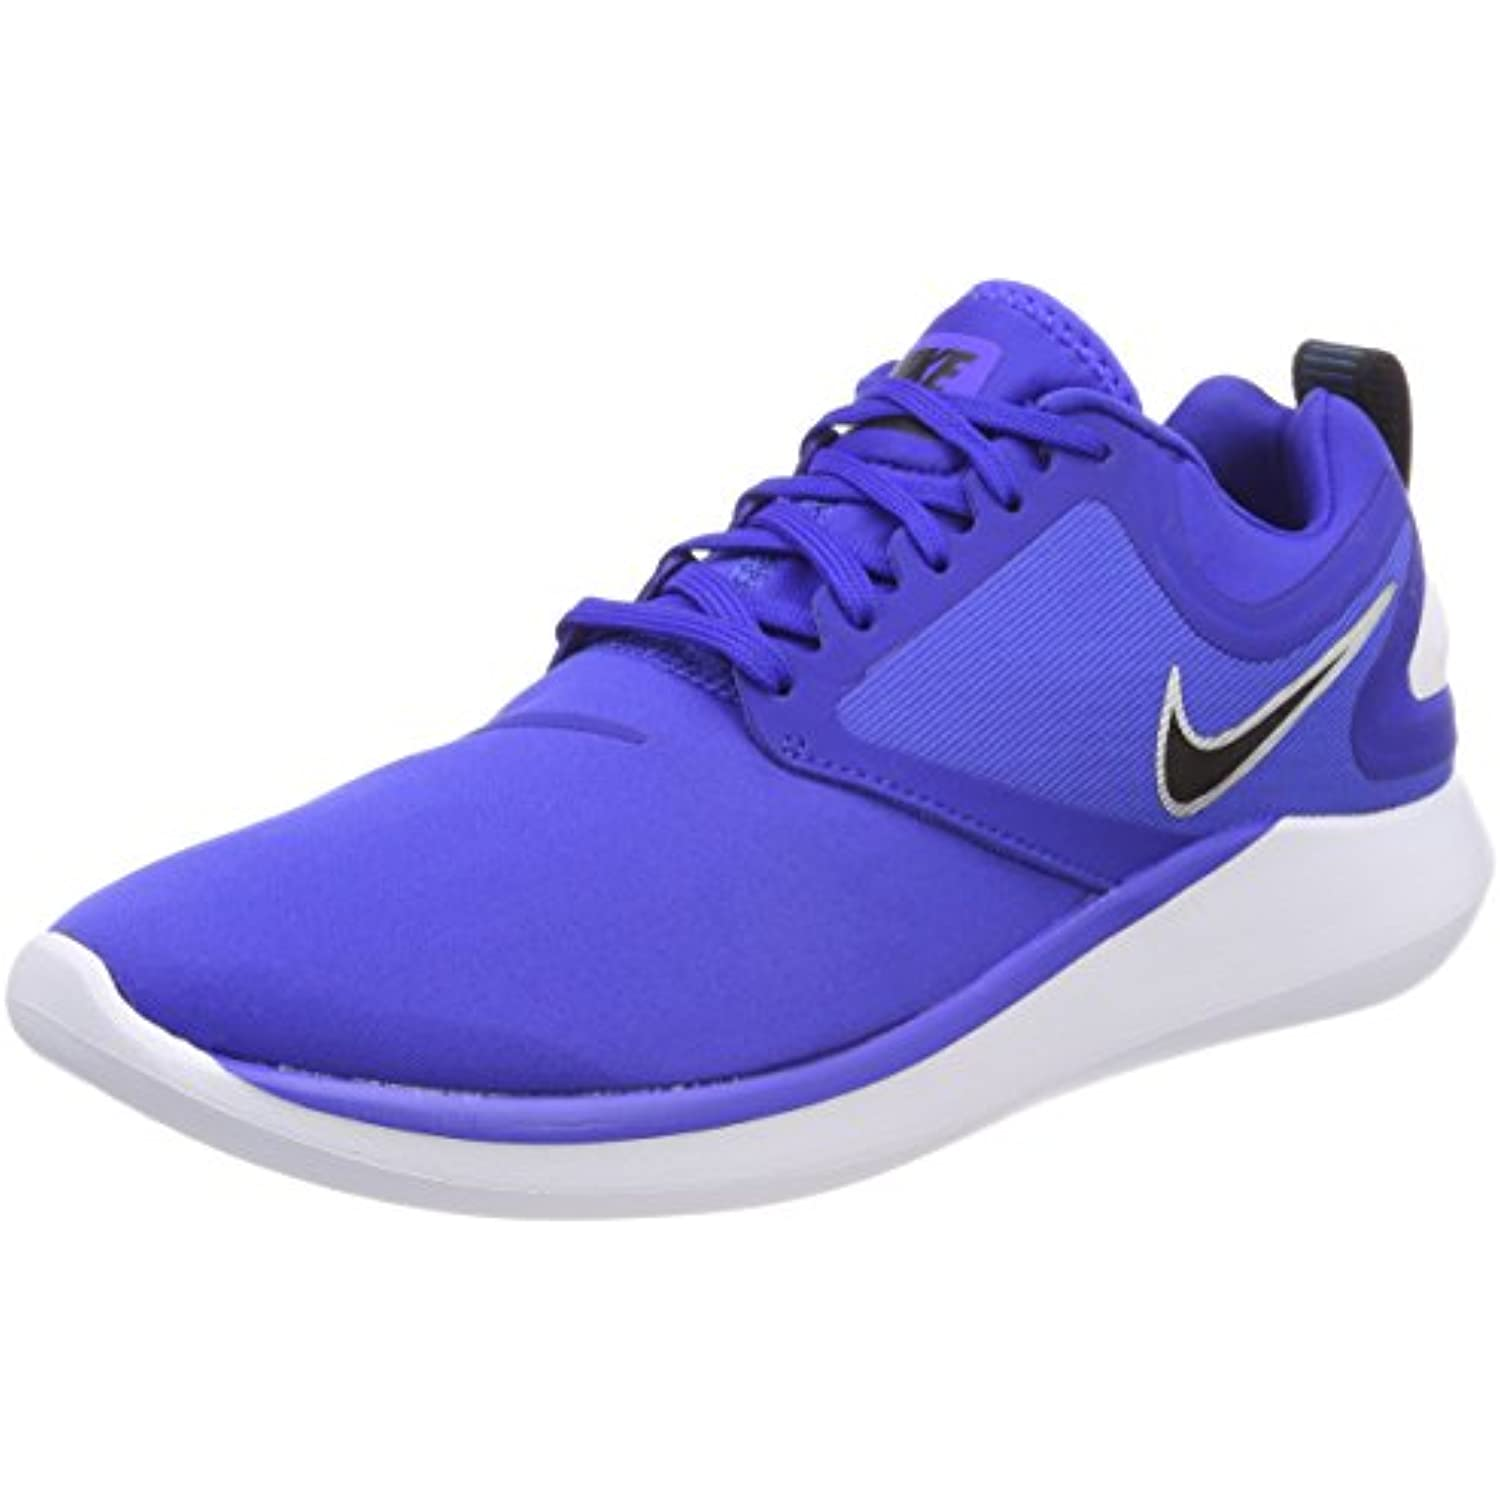 cheap for discount 0d561 2669a NIKE Lunarsolo, Chaussures de de de Running Homme - B0719CYSYB - a10938